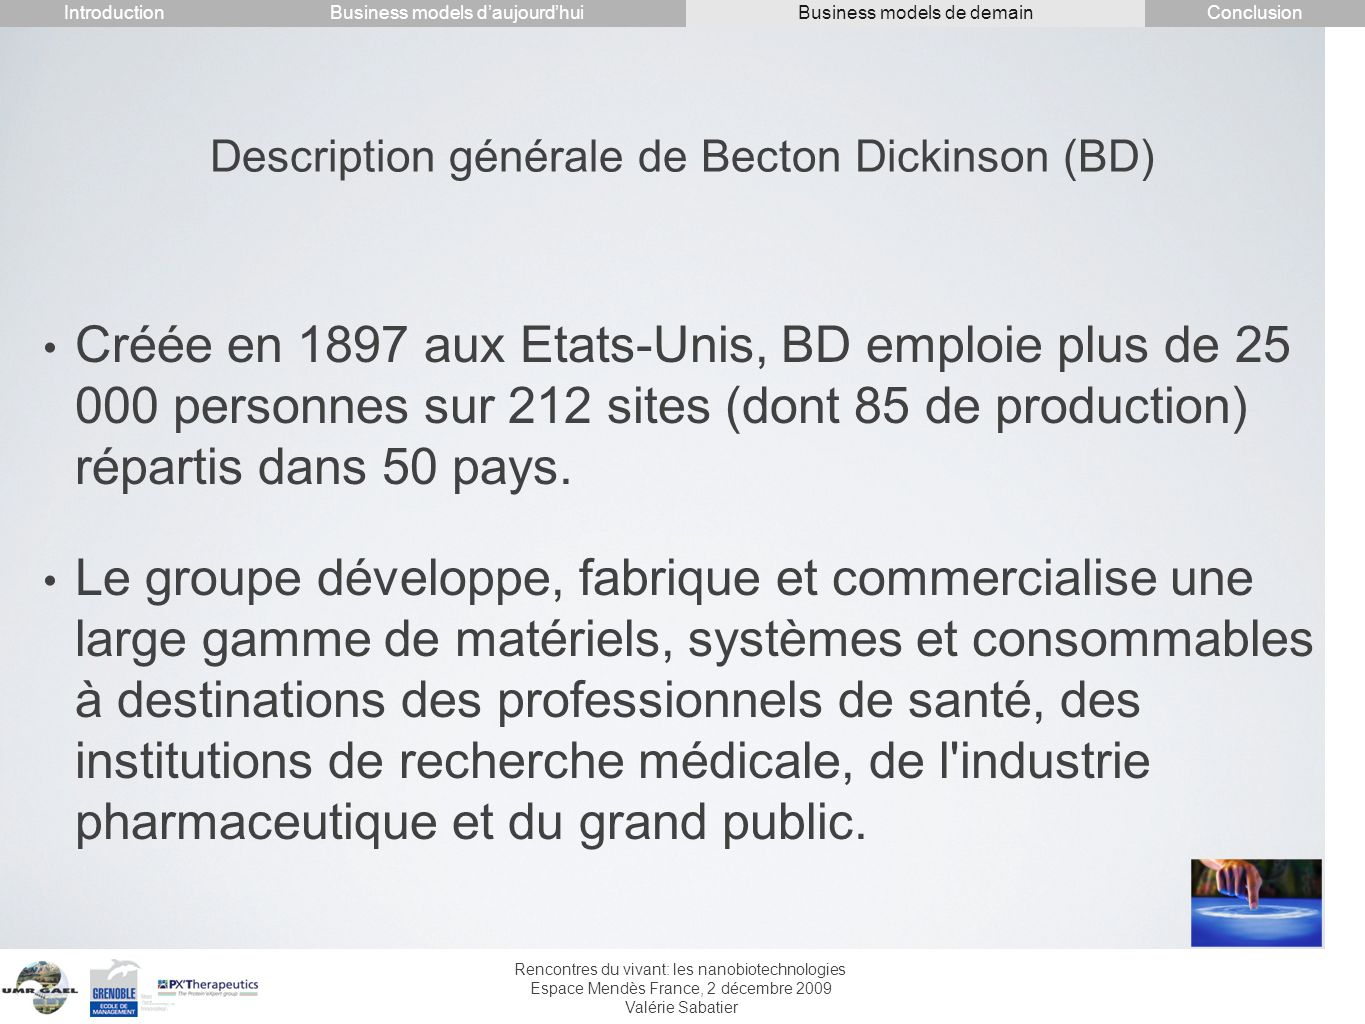 Description générale de Becton Dickinson (BD)